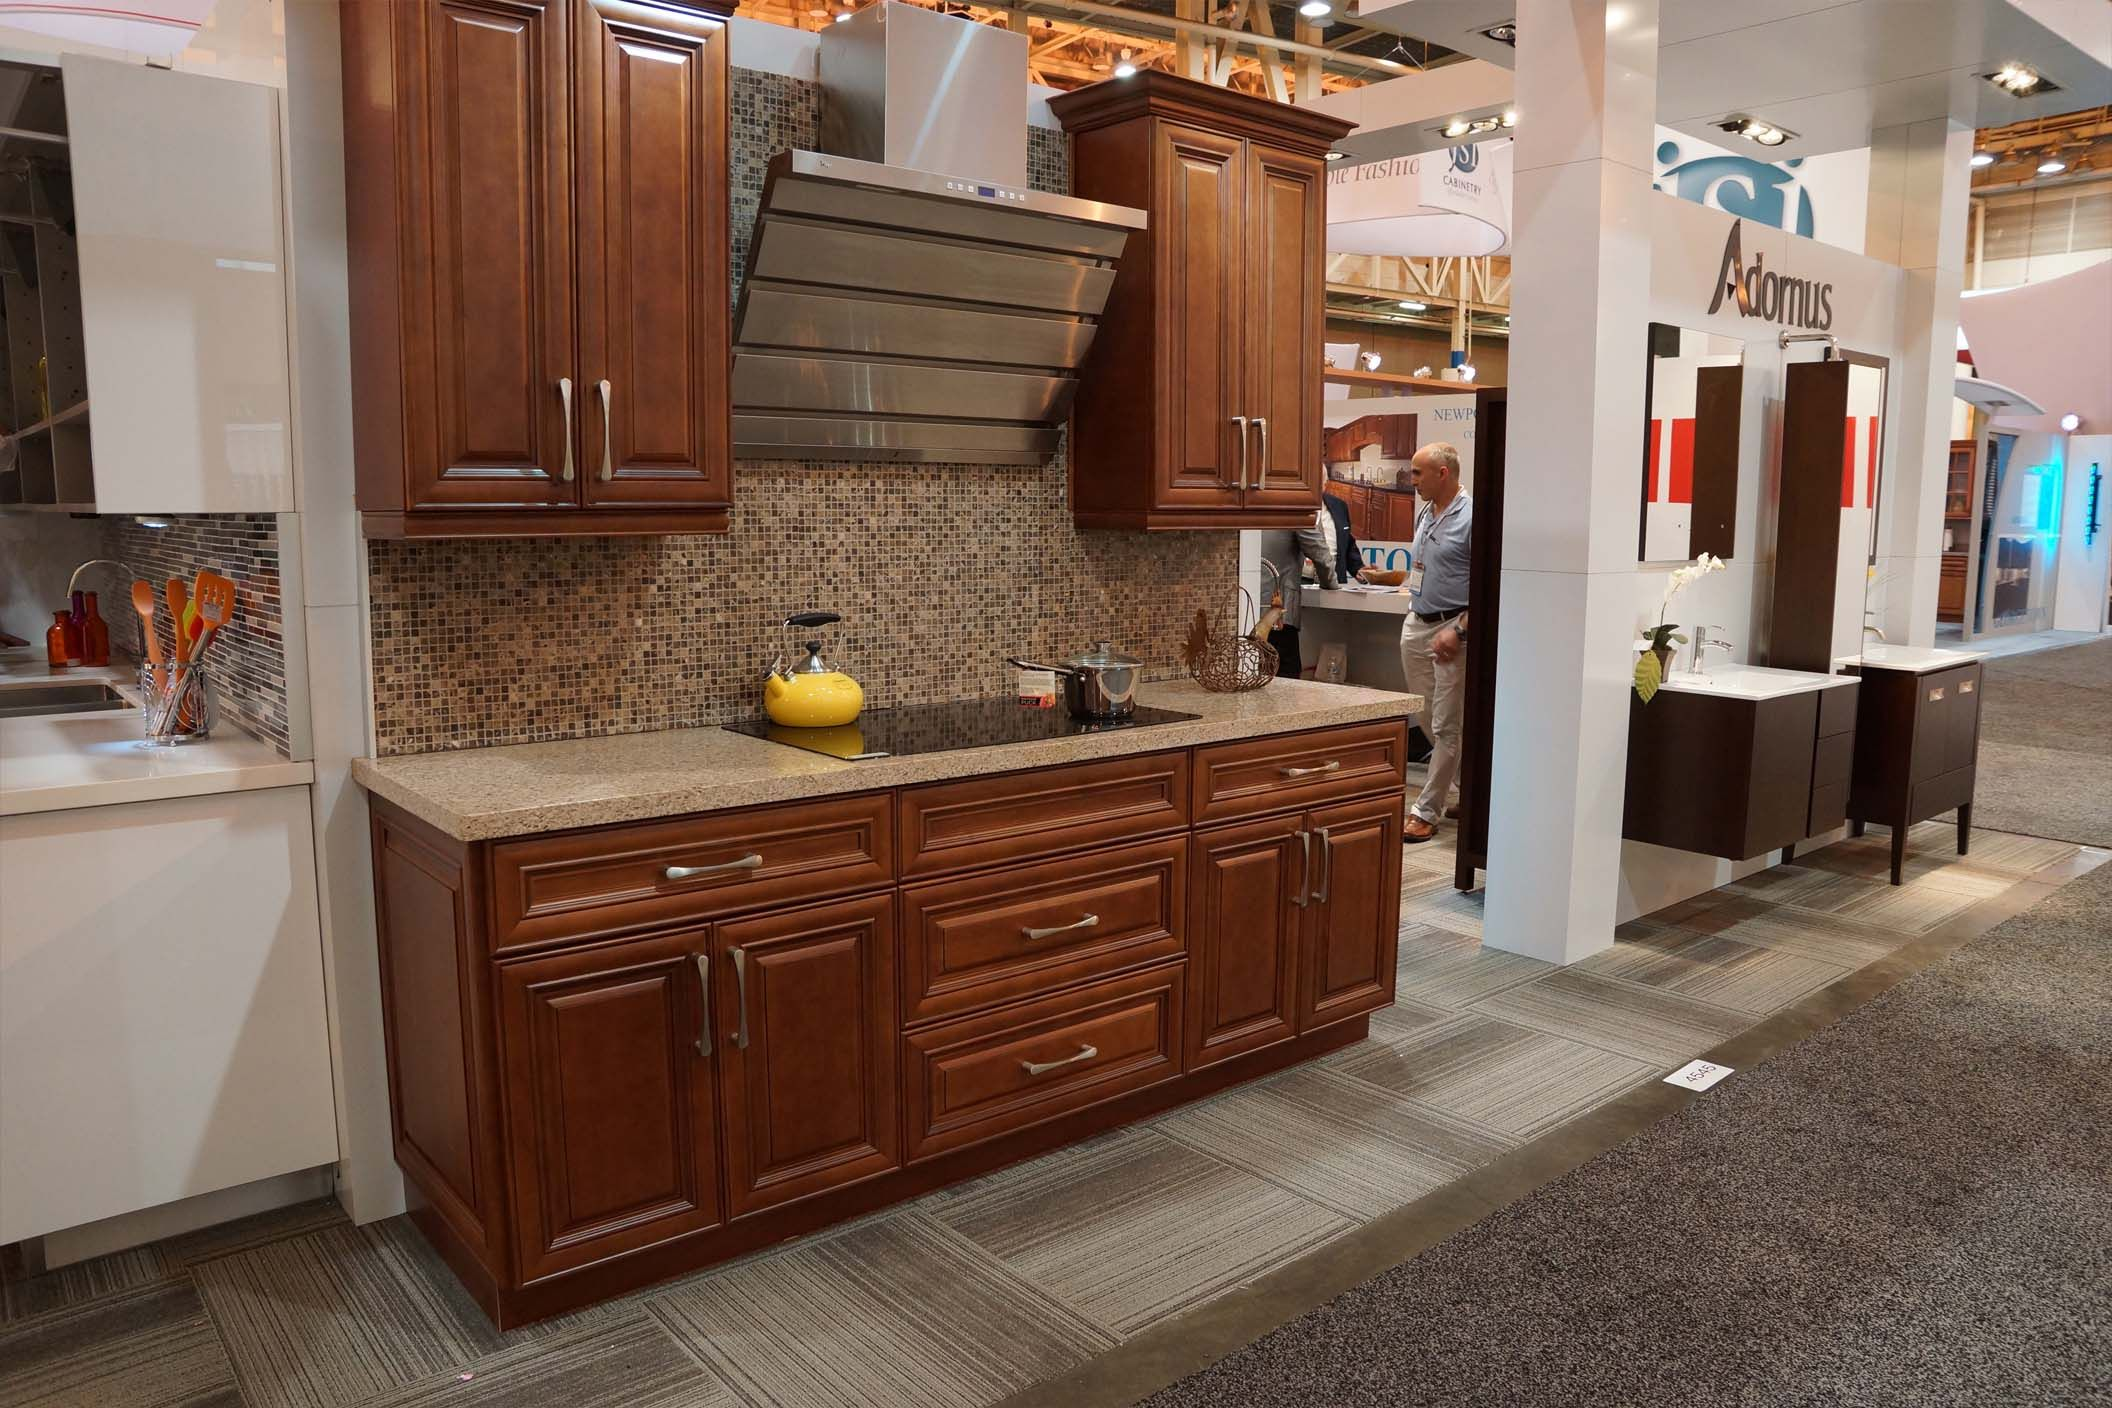 KBIS 2013 was a total success for Adornus. We unveiled a ...